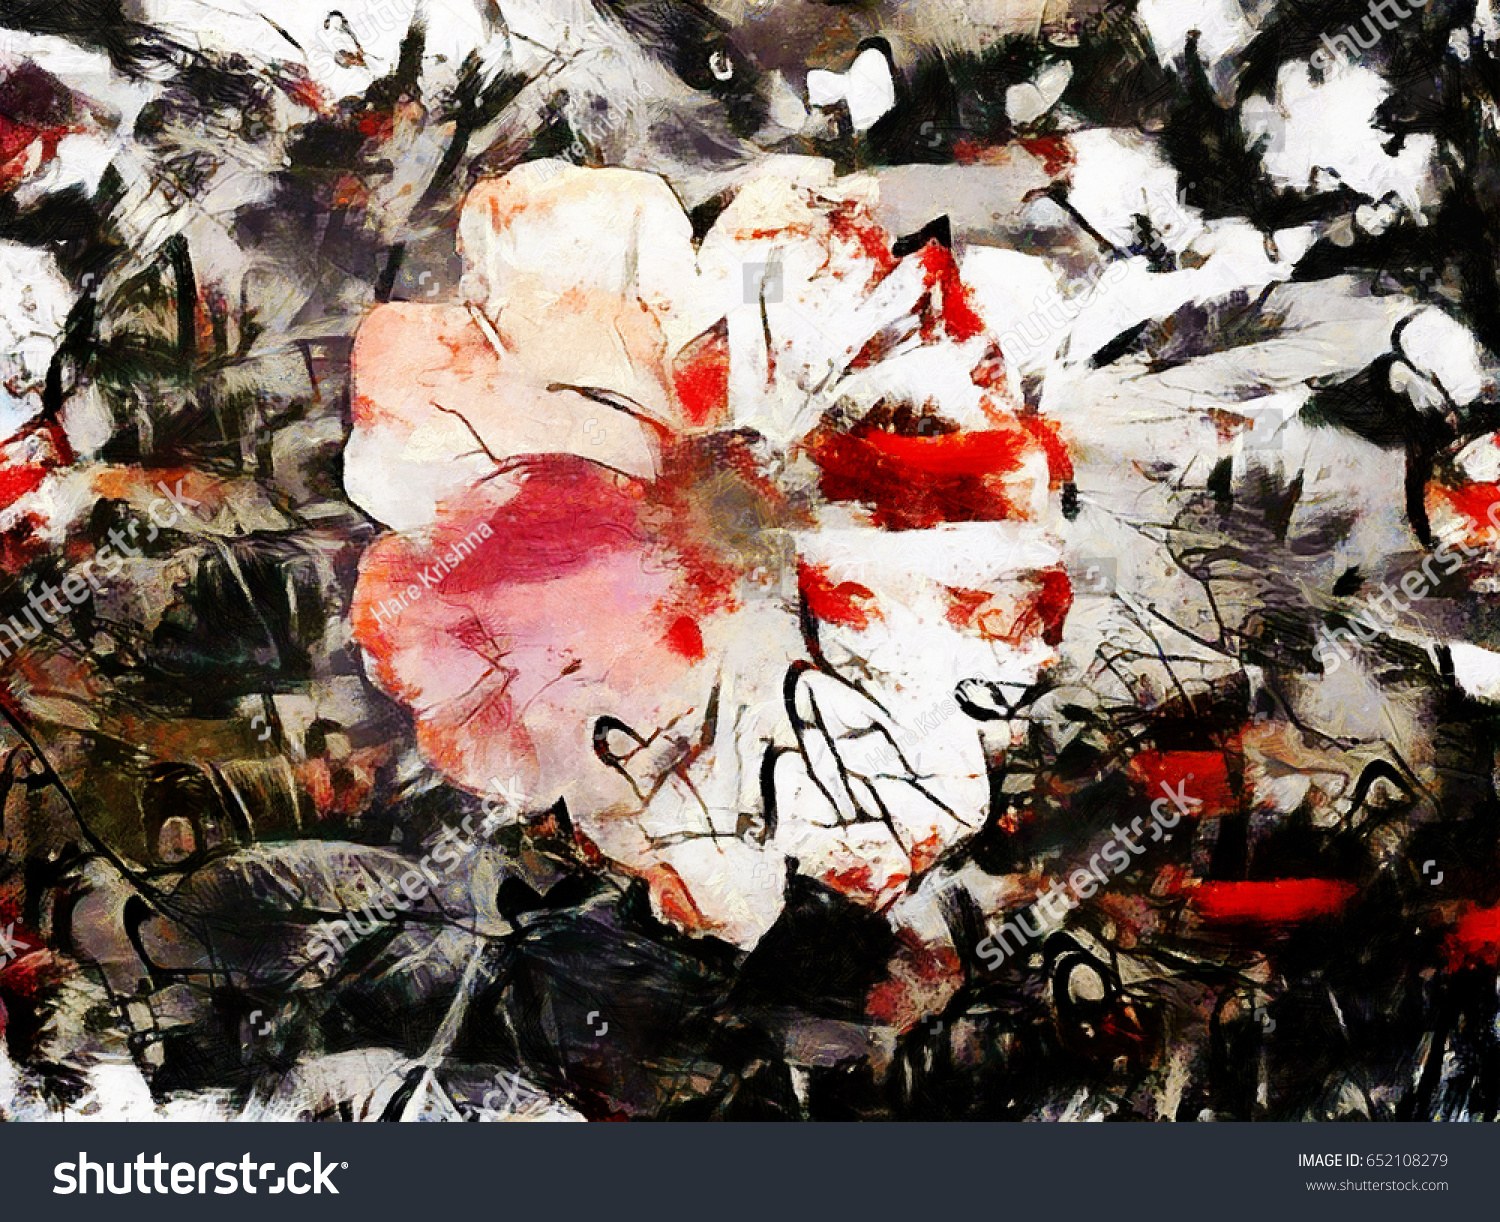 Red black abstract flowers bouquets style stock illustration red and black abstract flowers and bouquets in the style of jackson pollock grunge art izmirmasajfo Choice Image